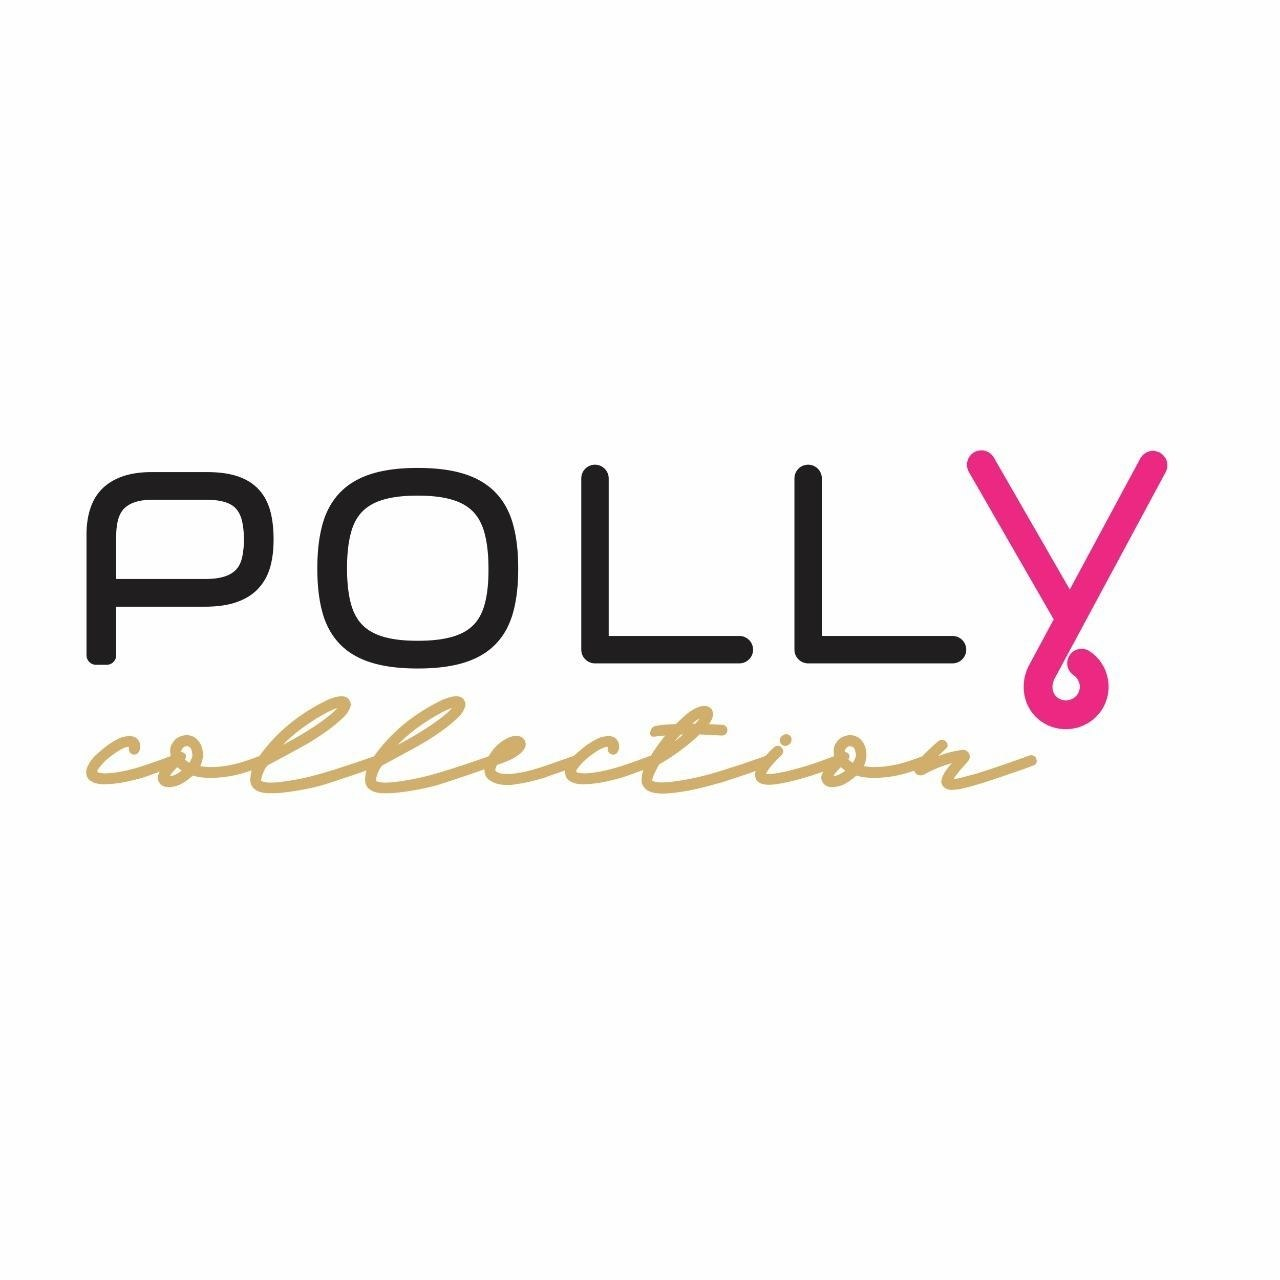 POLLY COLLECTION